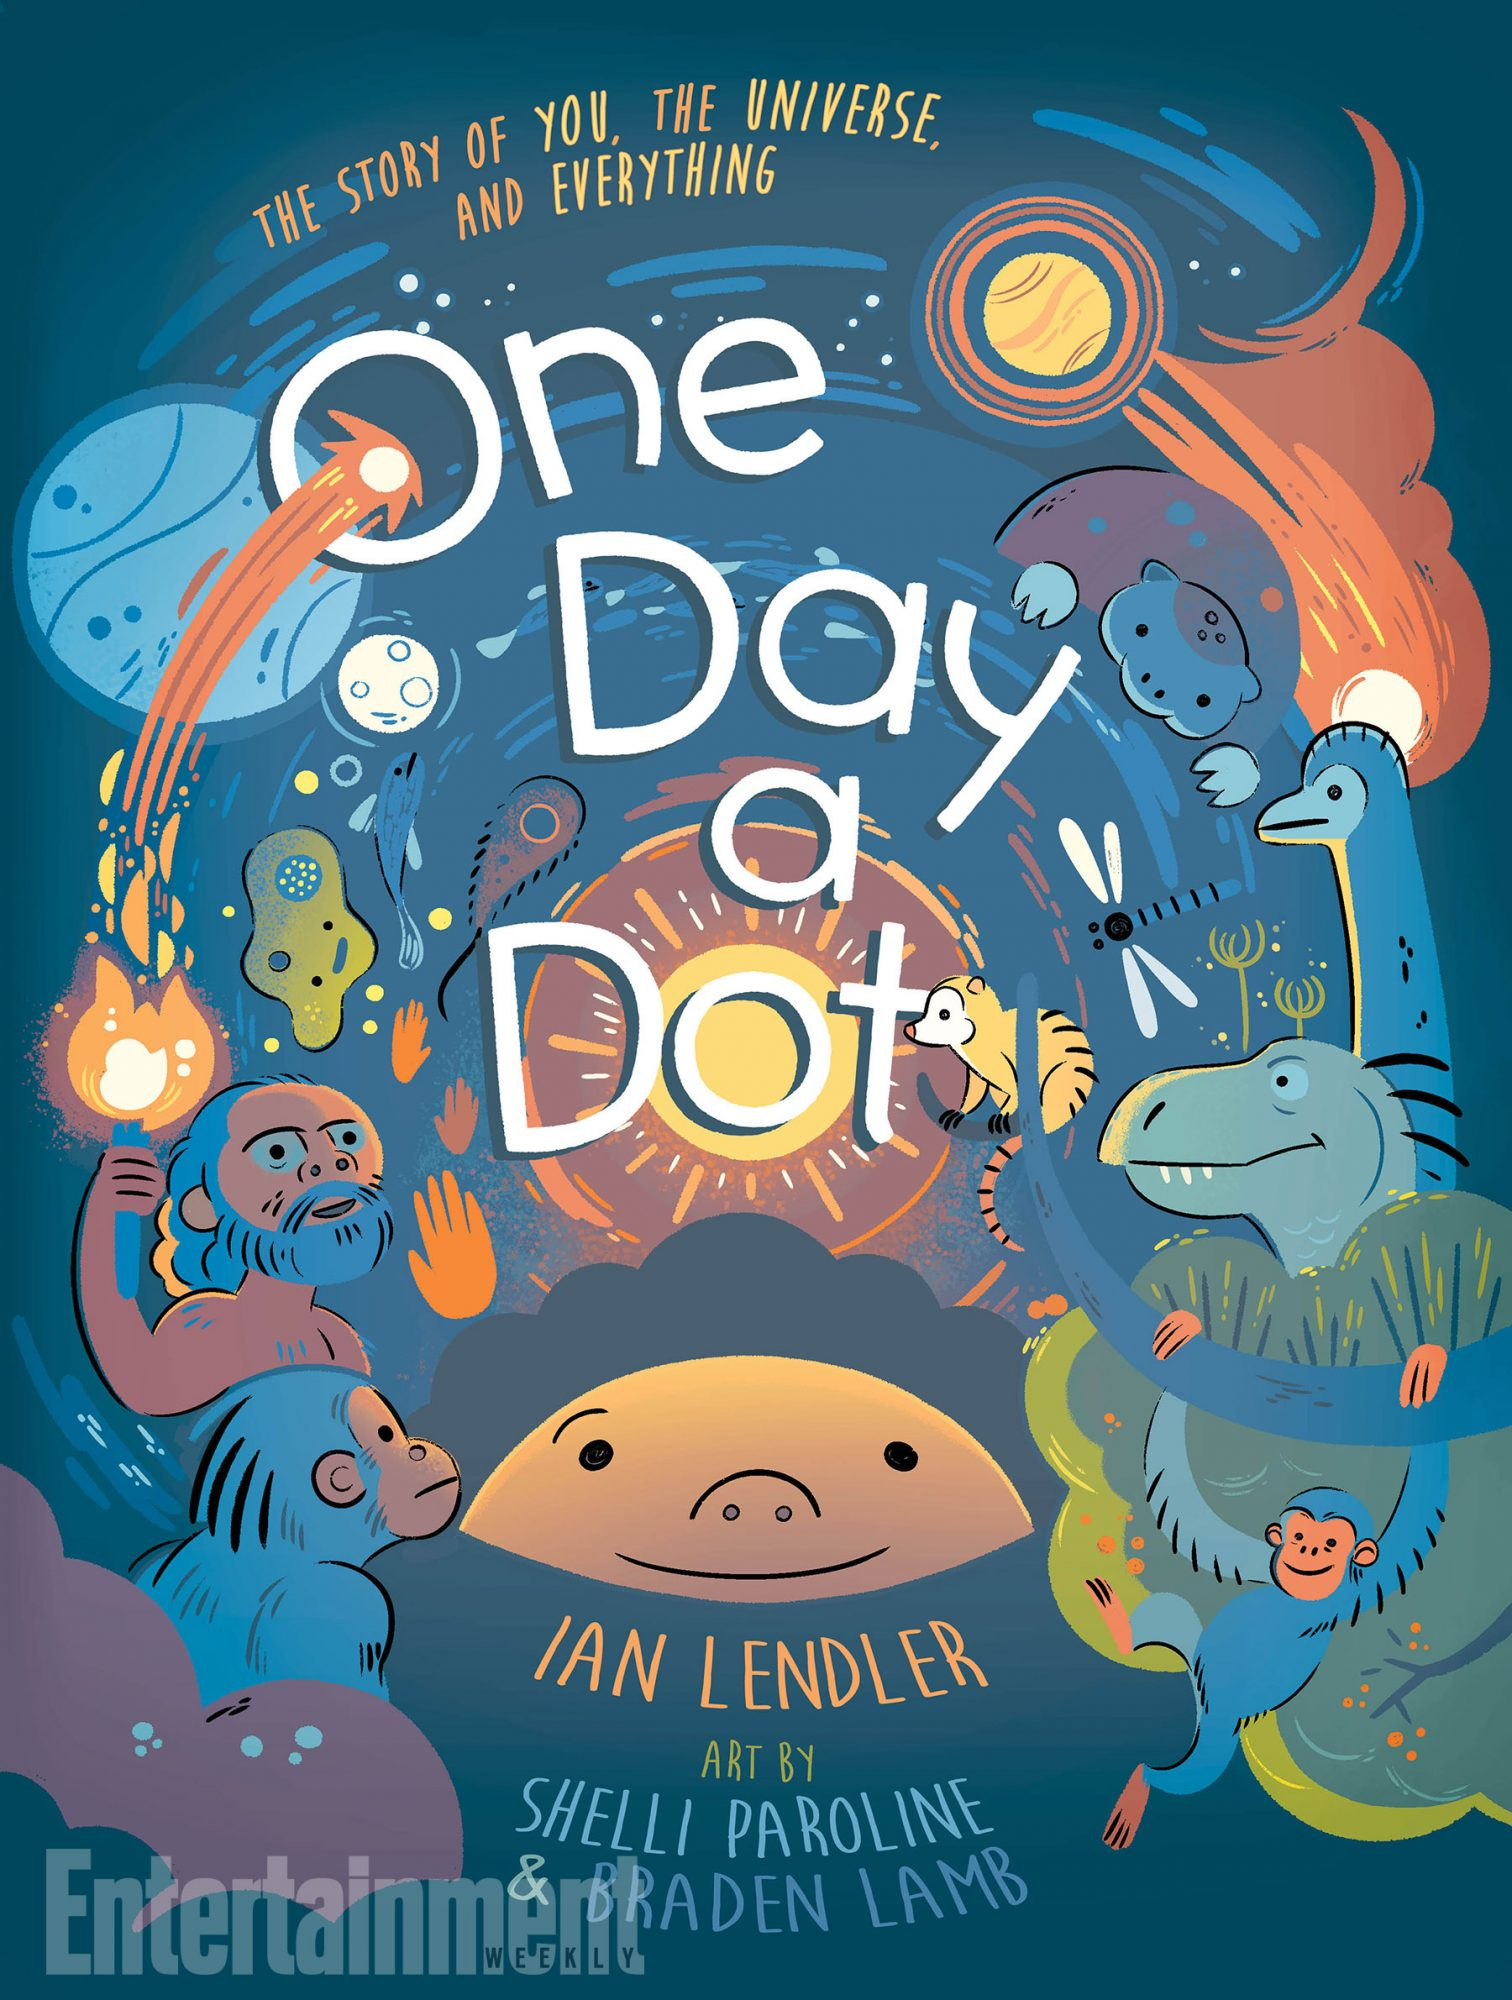 May 22, 2018                       One Day a Dot by Ian Lendler, Shelli Paroline, and Braden Lamb